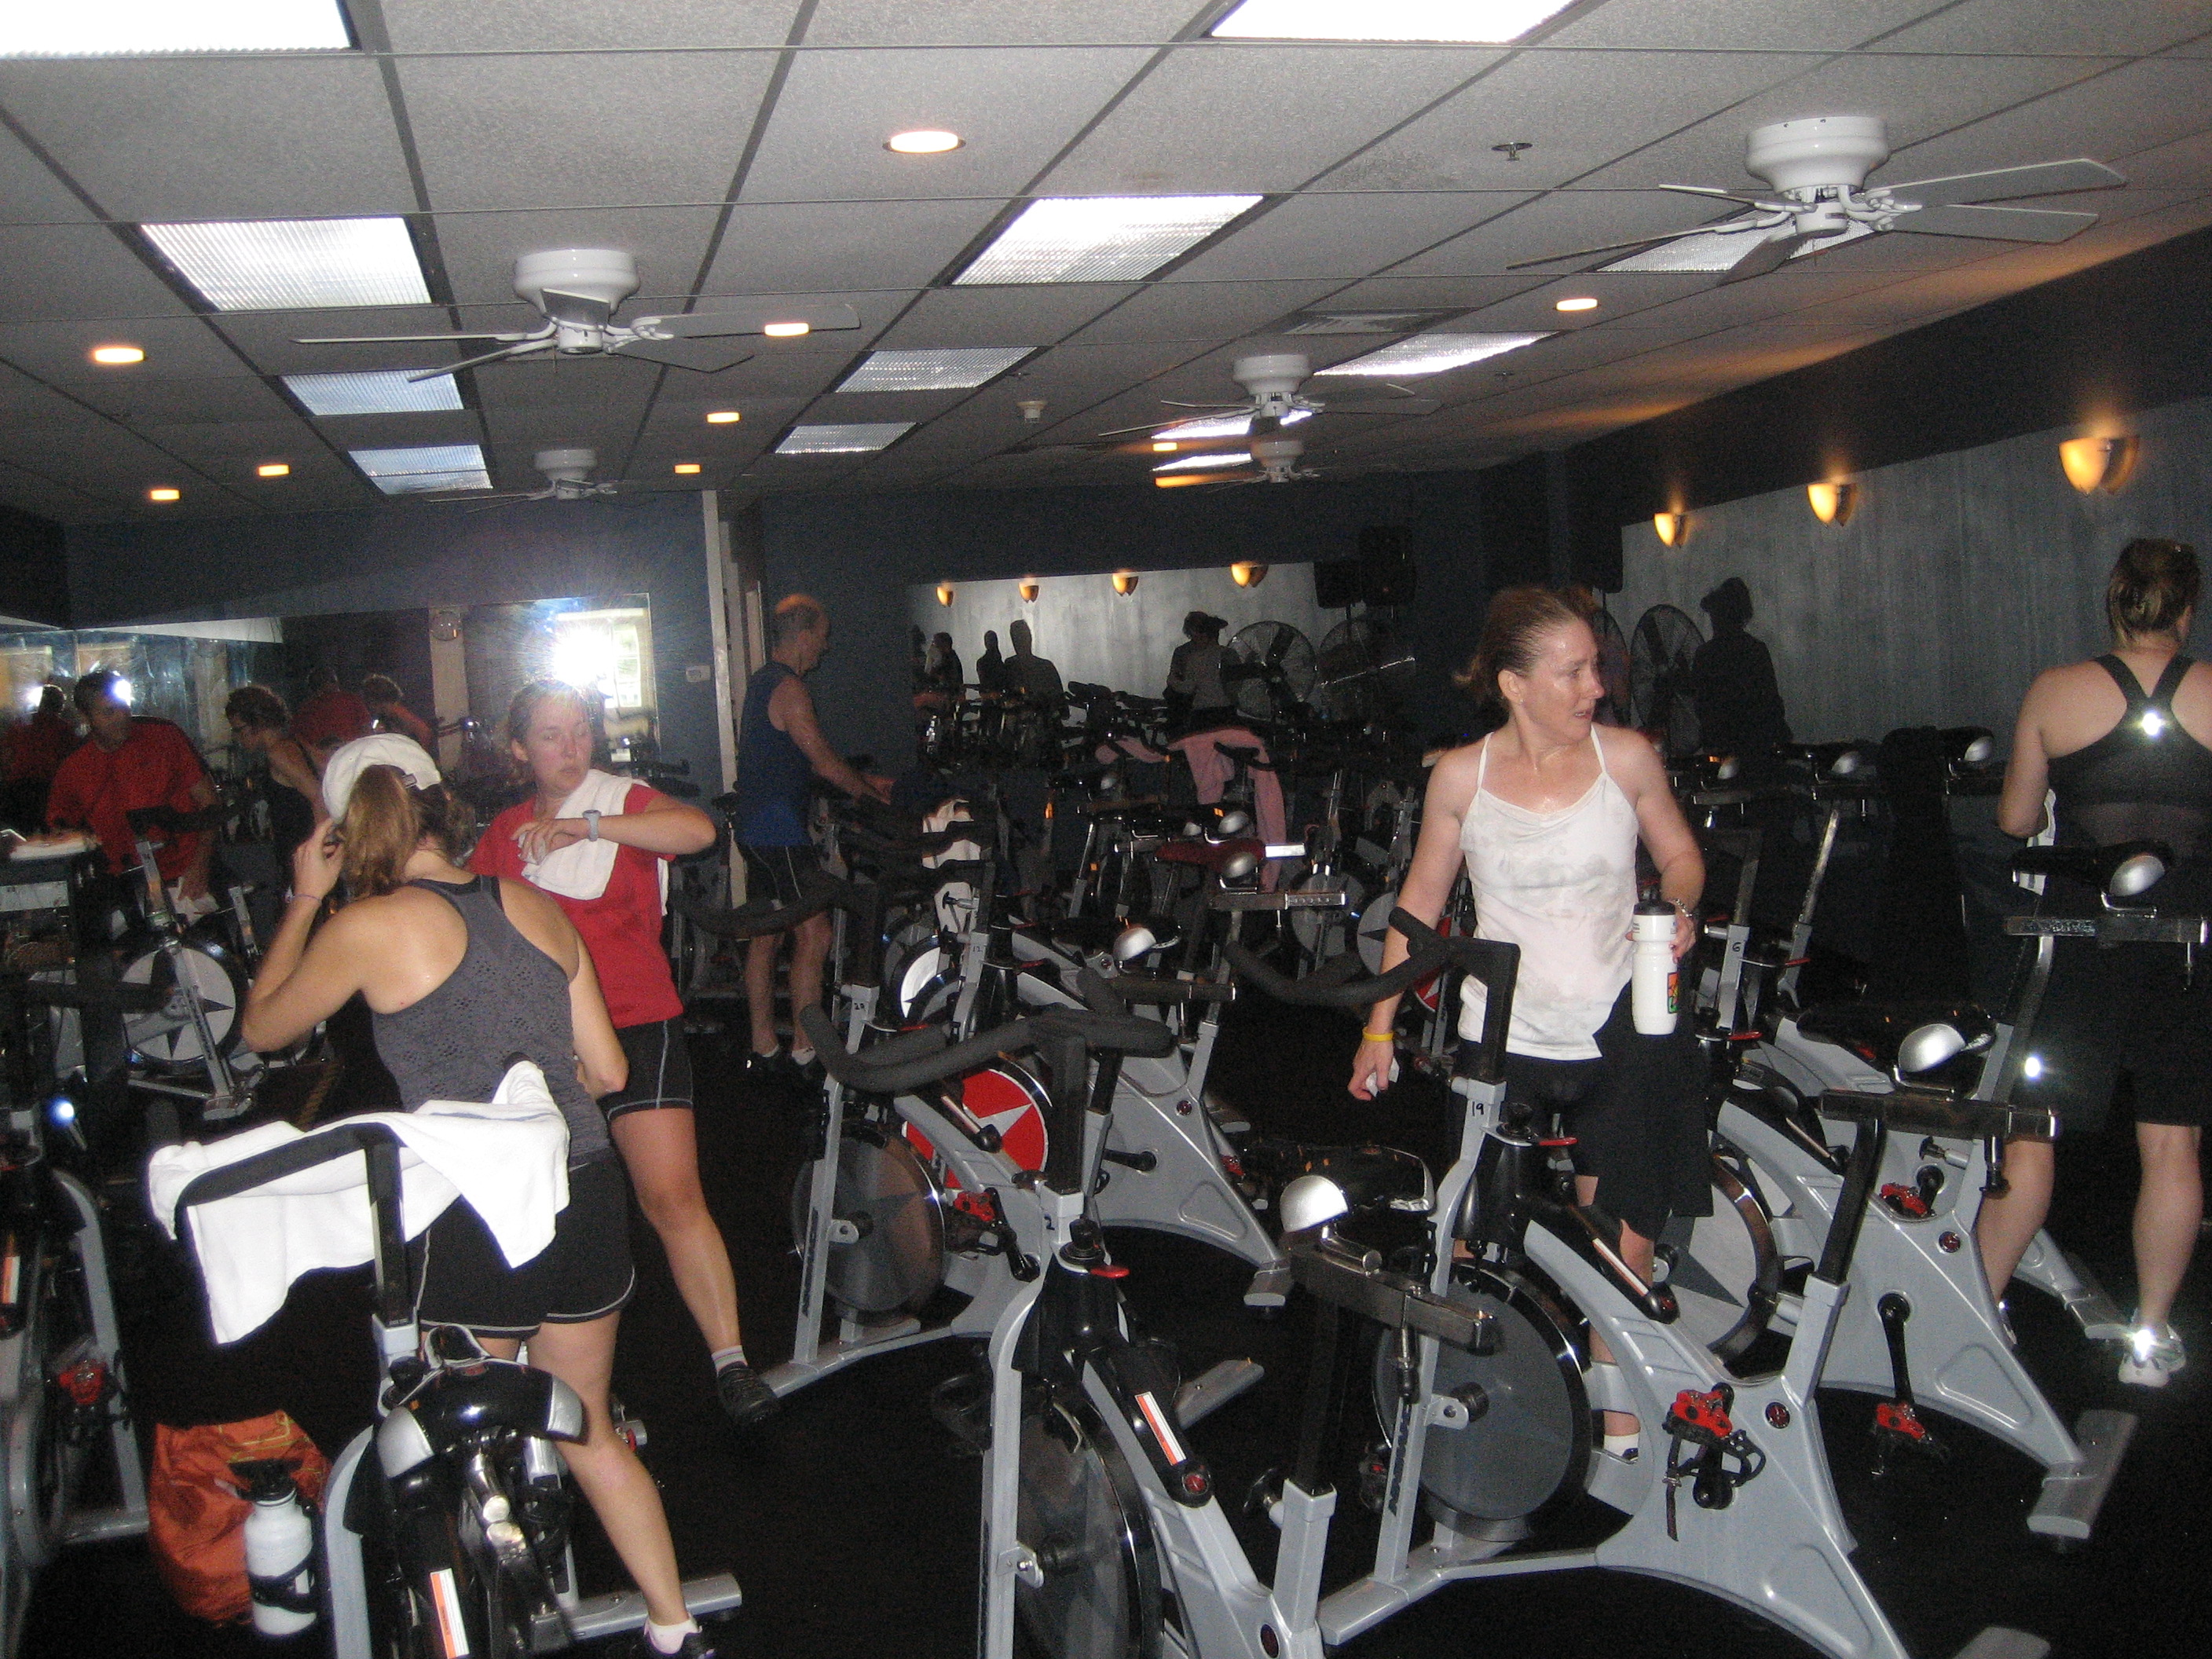 spinning studio business plan pdf